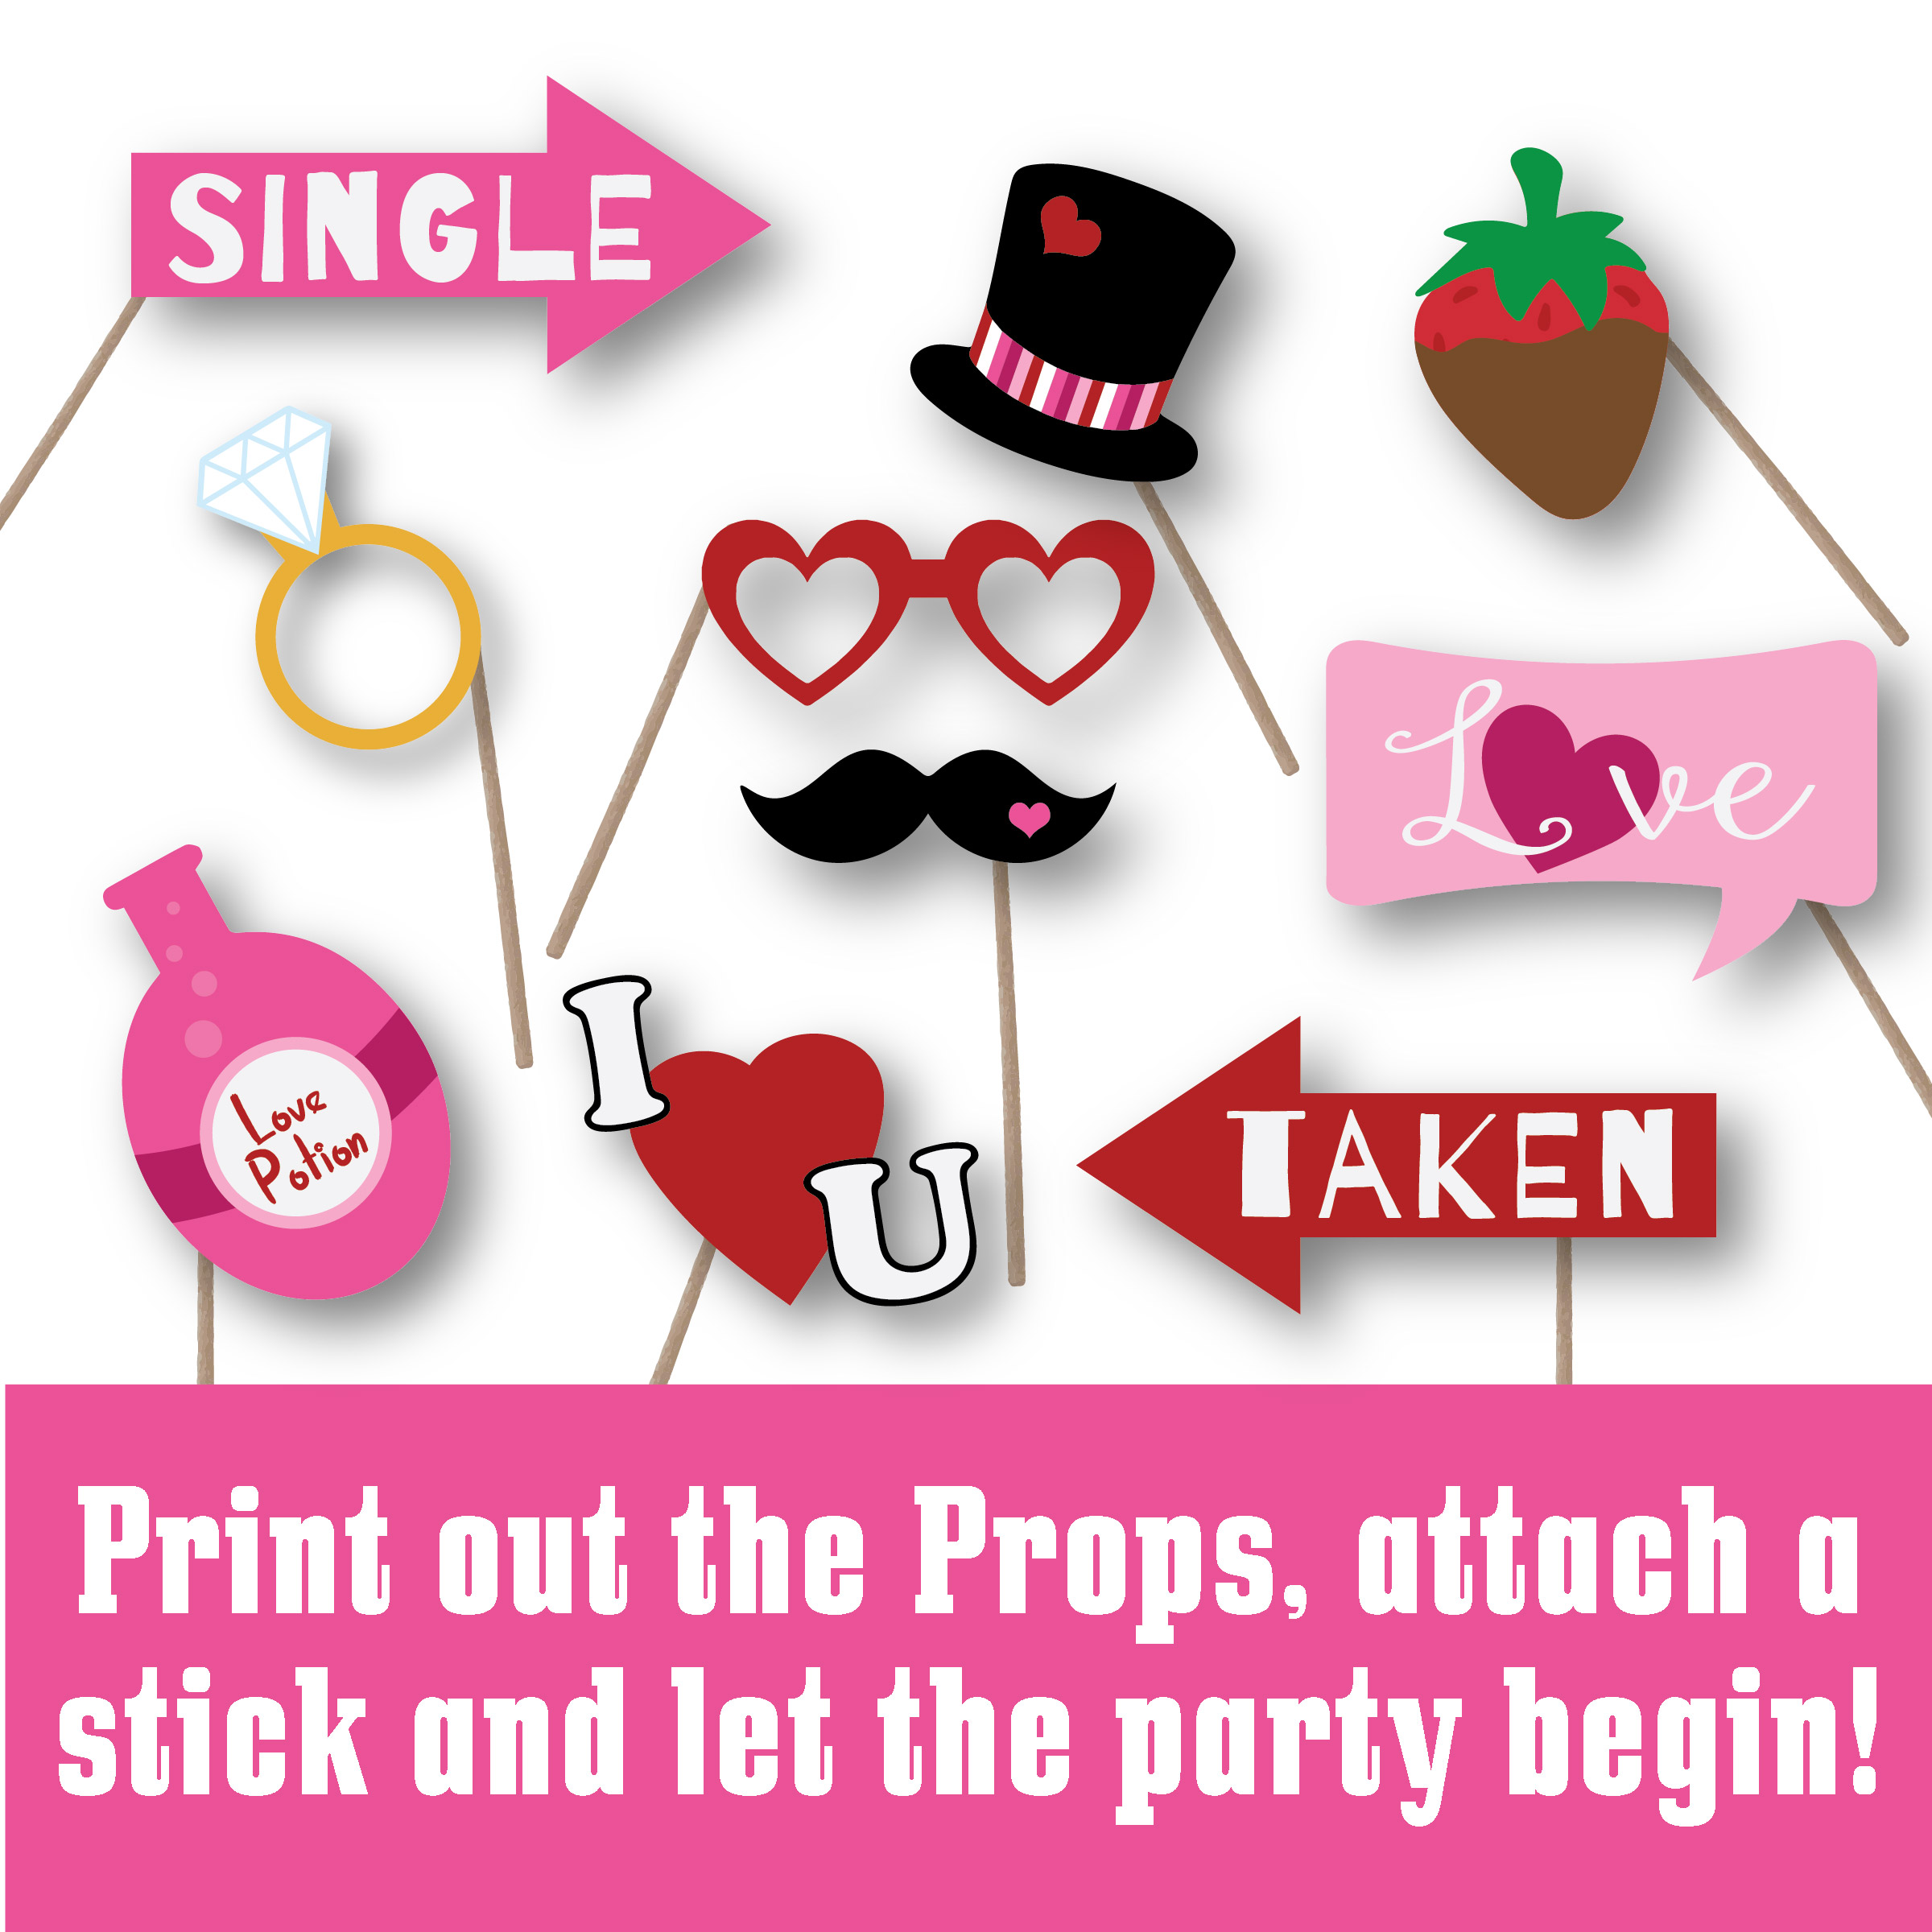 Valentines Day Photo Booth Props - SVG Cut File - DXF - EPS example image 3